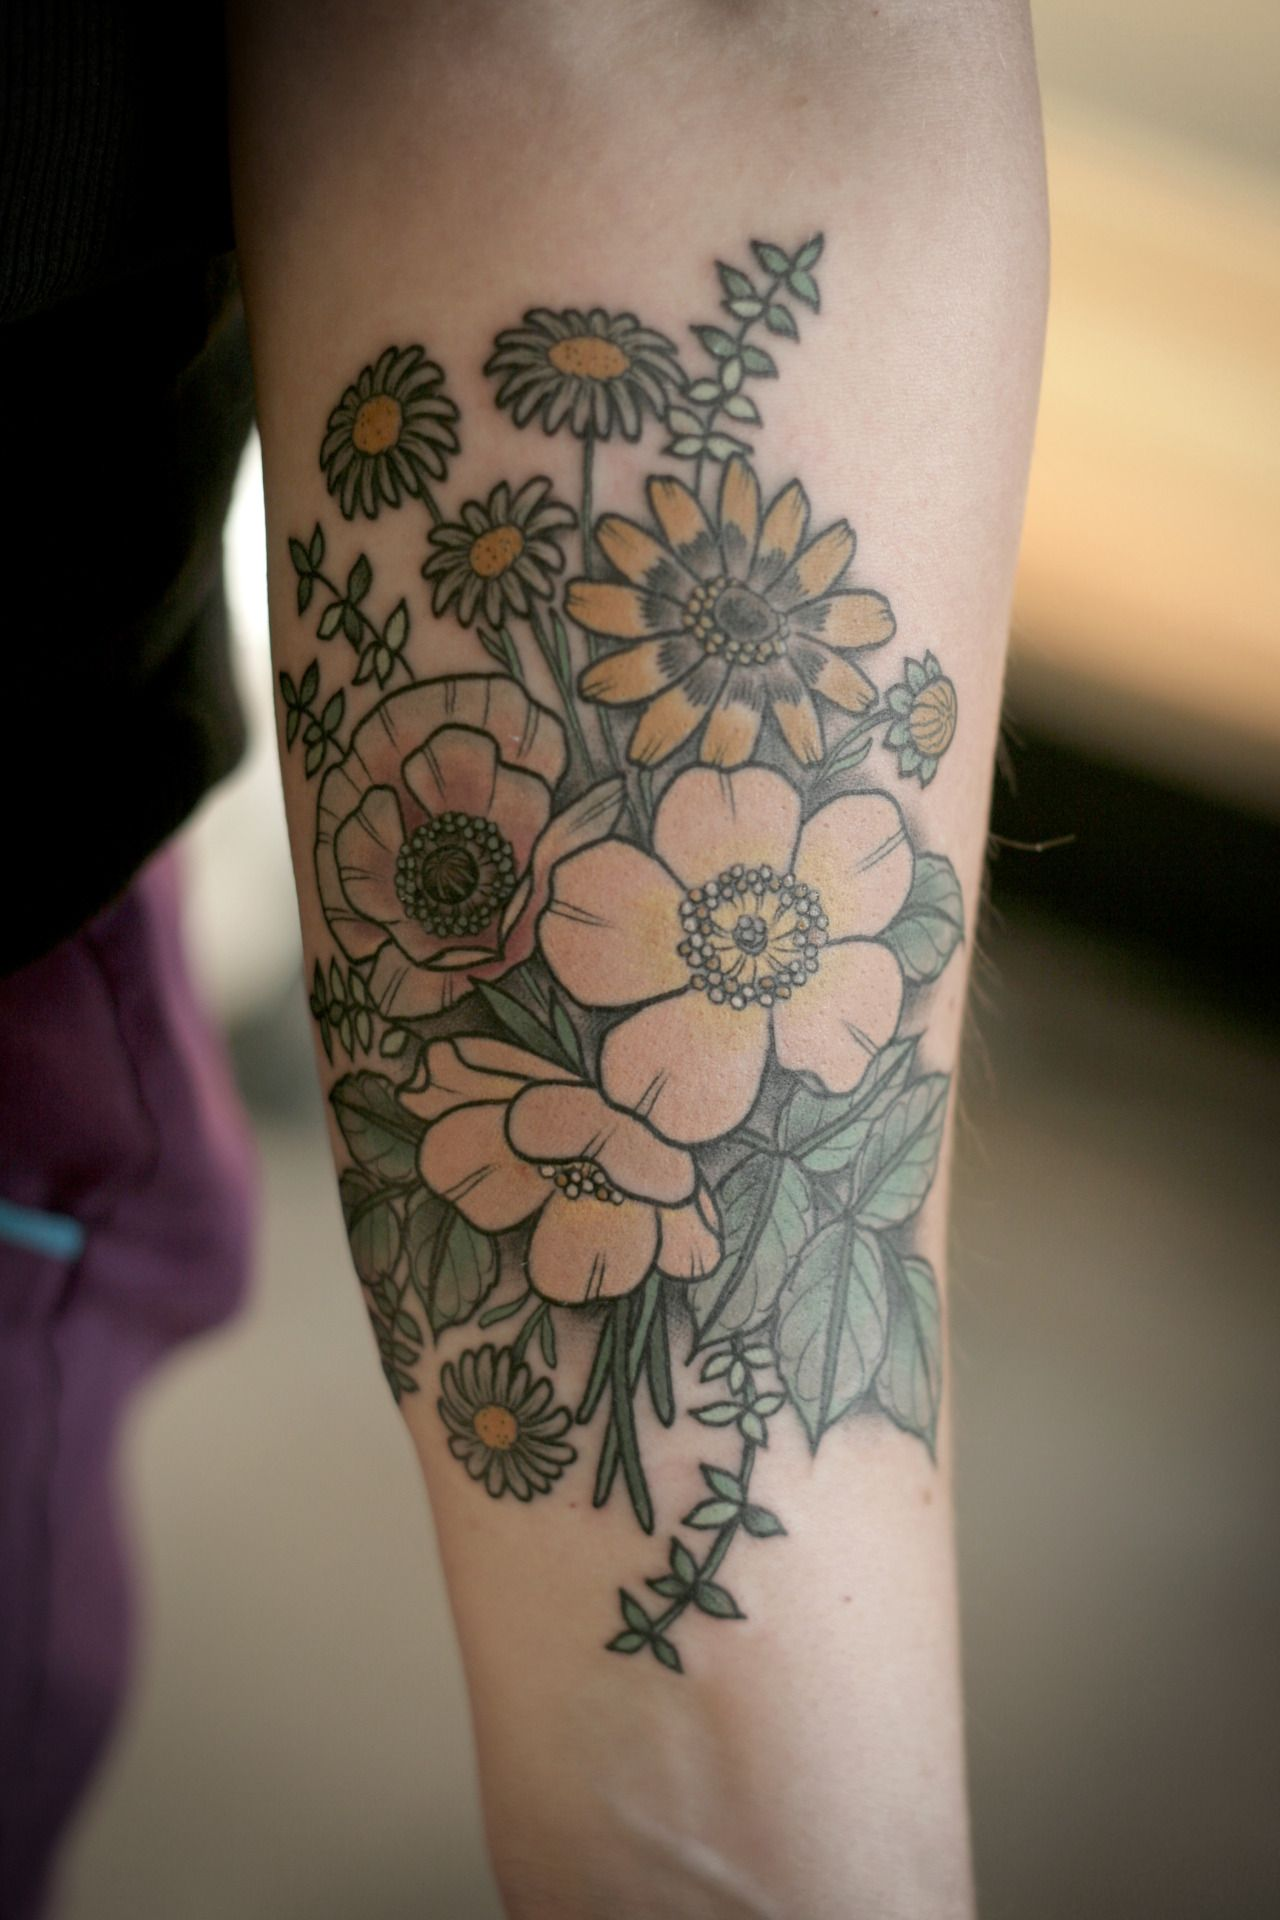 bccef5d1ff9b1 30 Daisy Flower Tattoos Design Ideas for Men and Women | Tattoos ...